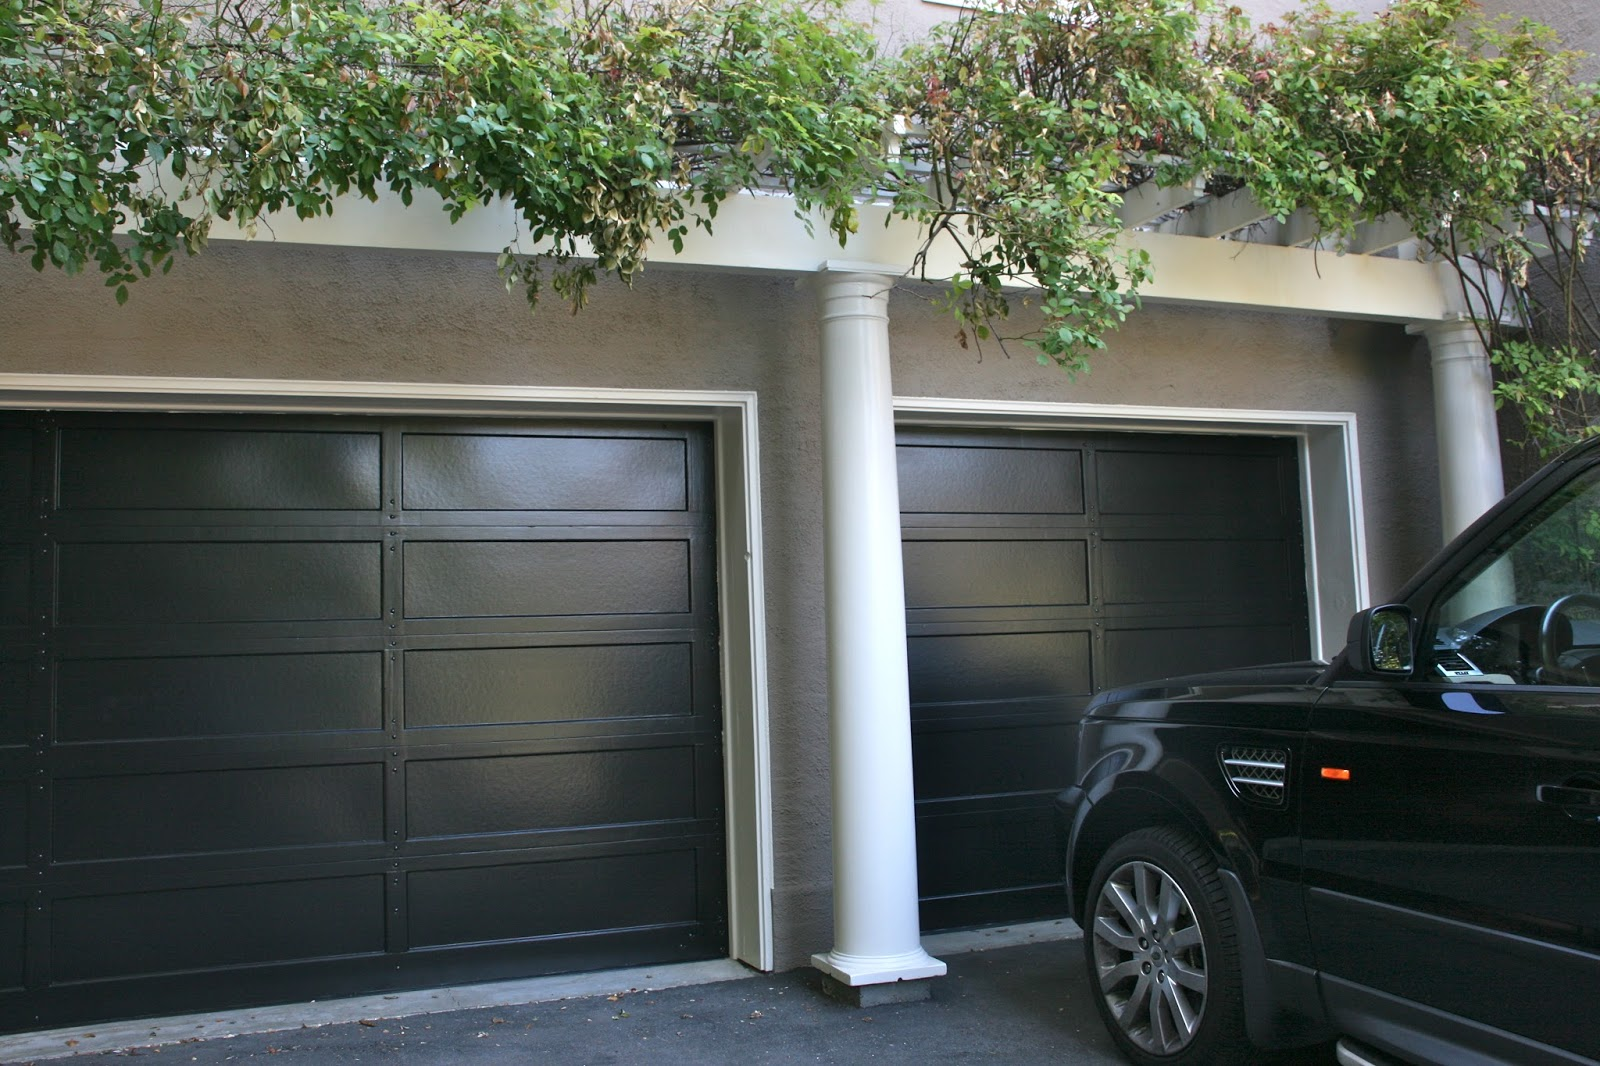 1066 #637D4E Vignette Design: A Whole New Look For A Grand Old Lady save image Dark Garage Doors 36571600